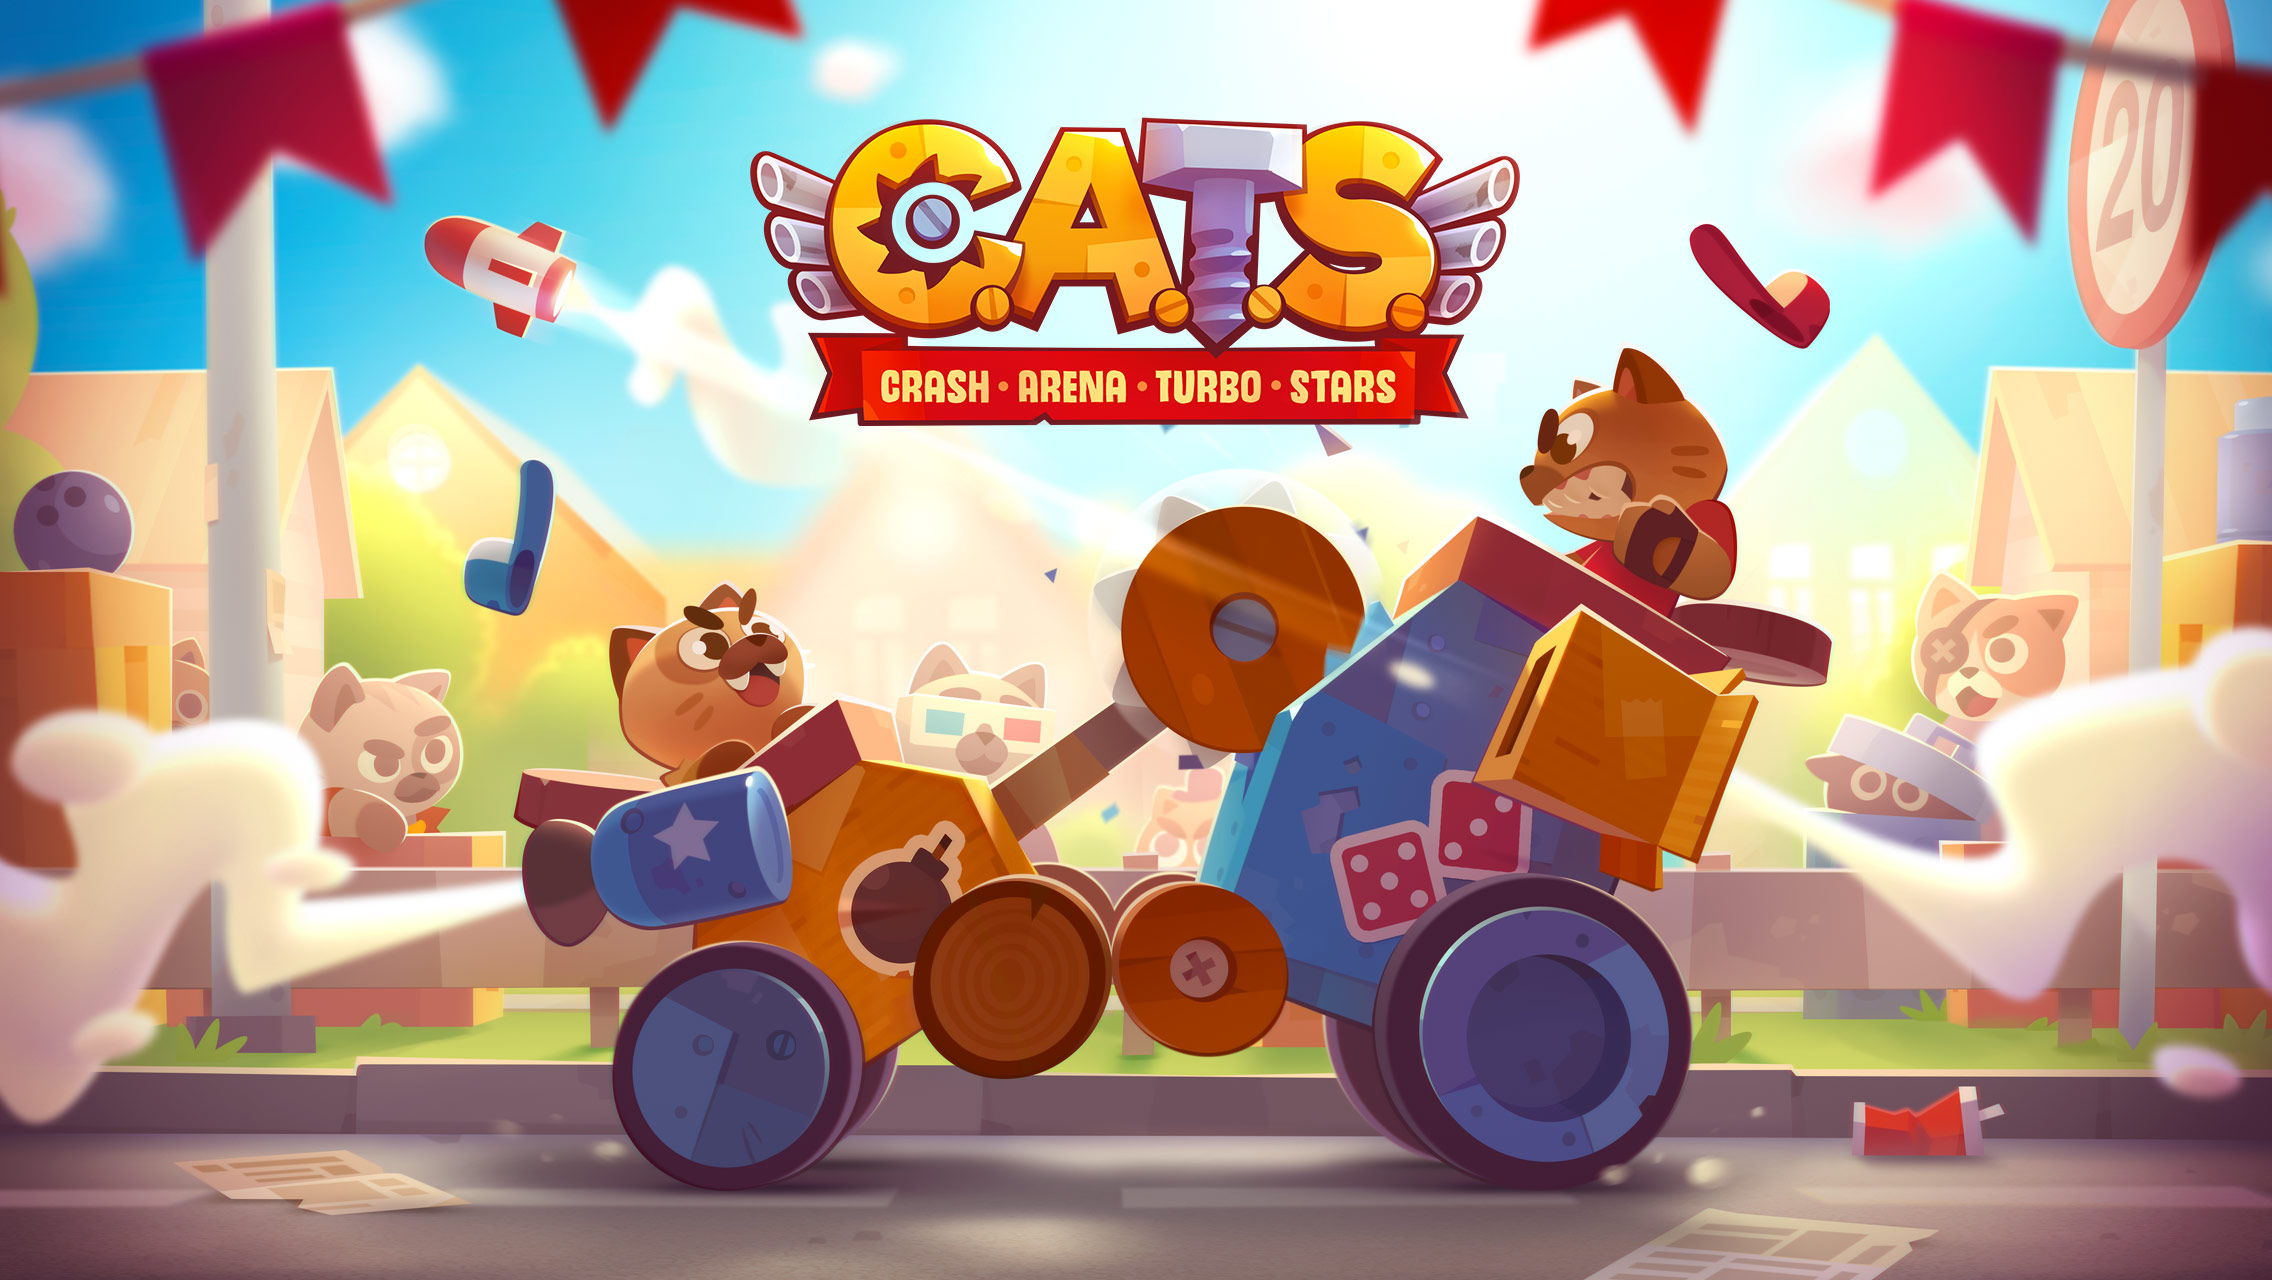 Cut the Rope Developer ZeptoLab Teases its New Game, C.A.T.S.